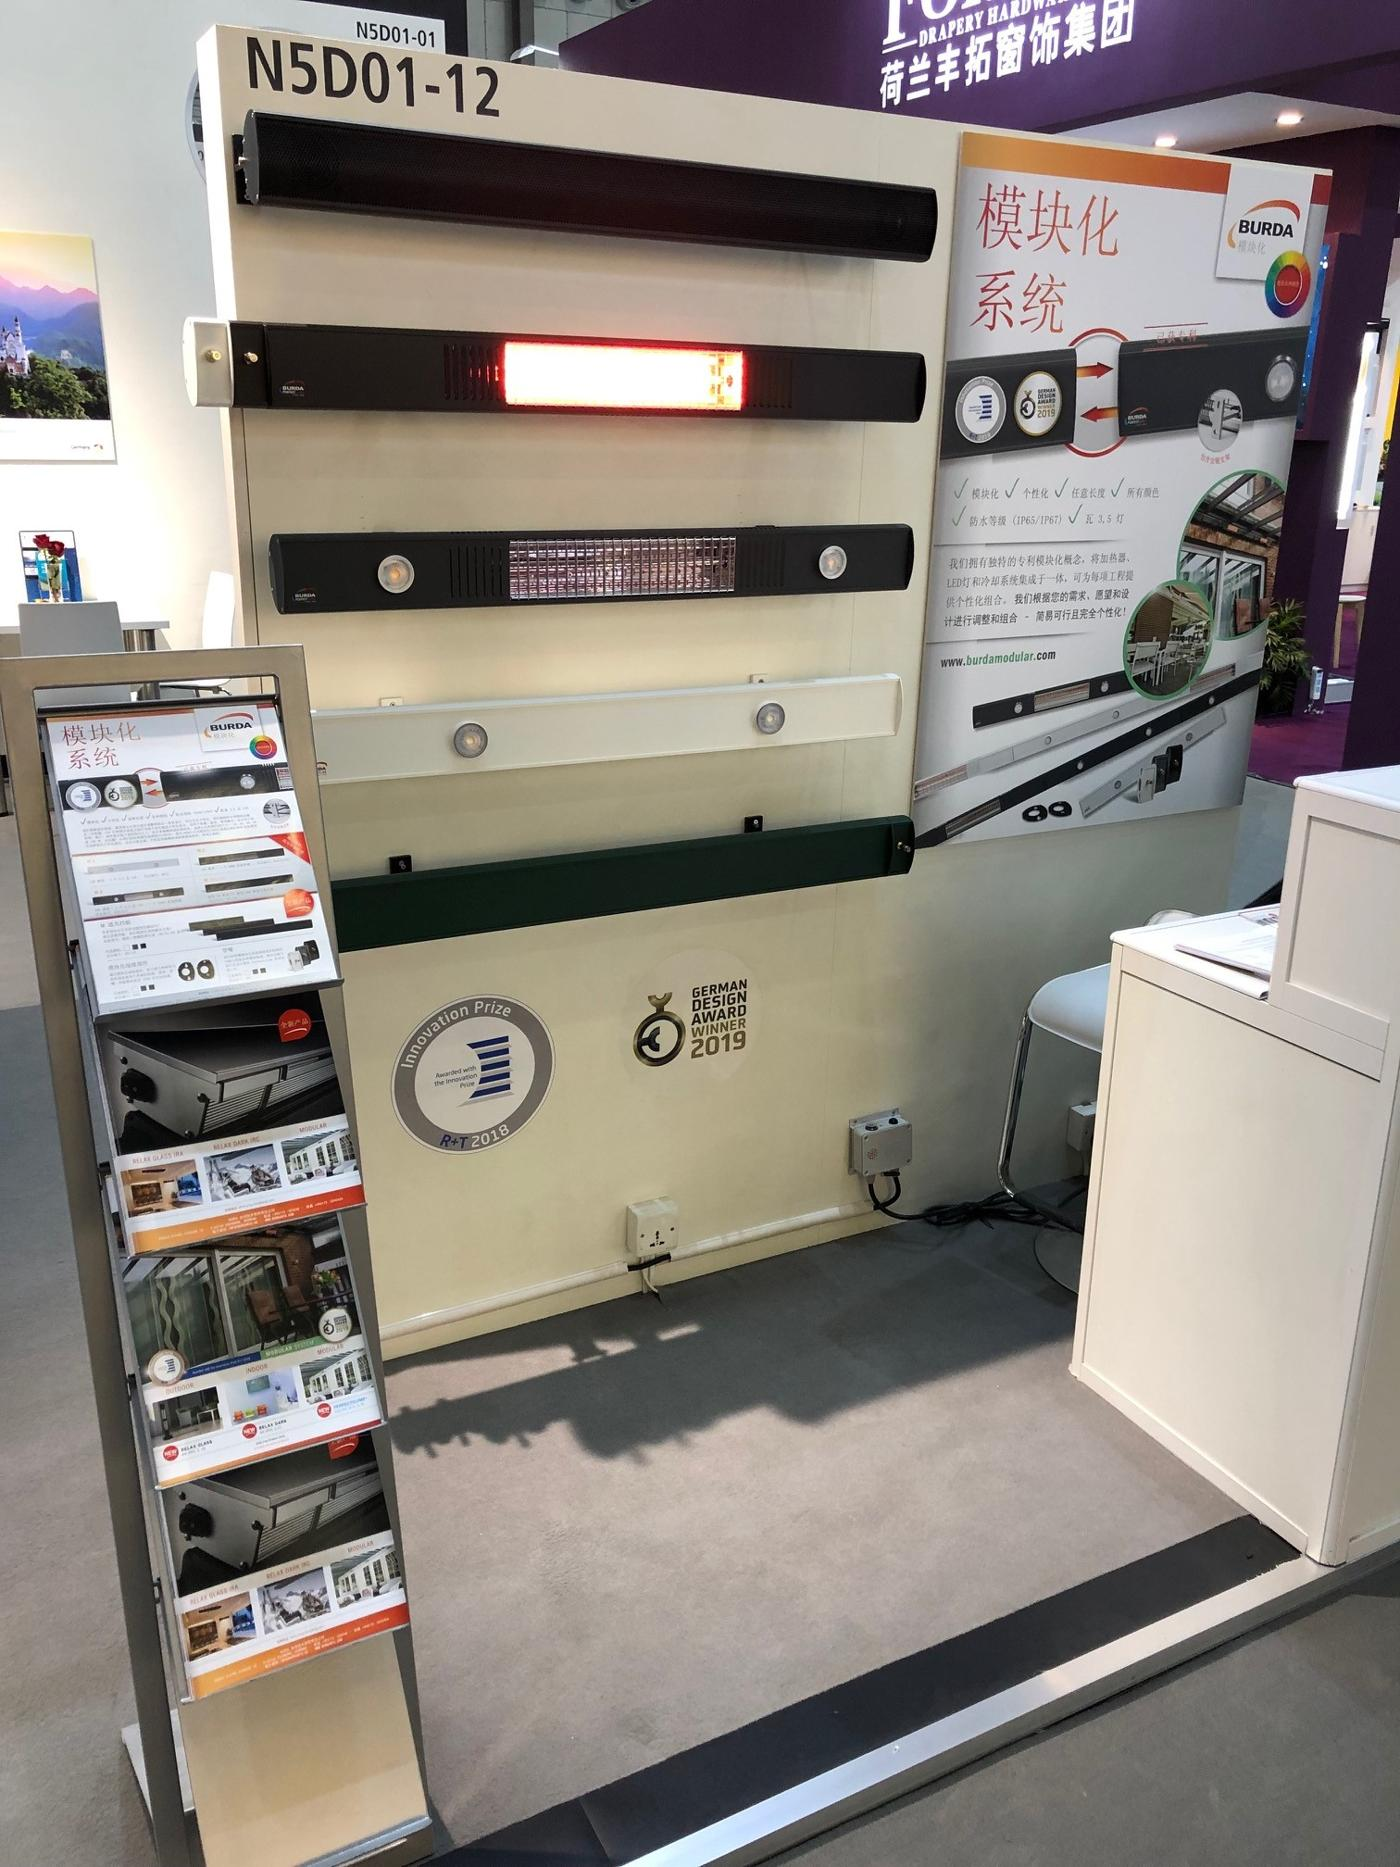 BURDA-Messestand-GERMAN-PAVILION-R+T-ASIA-2019